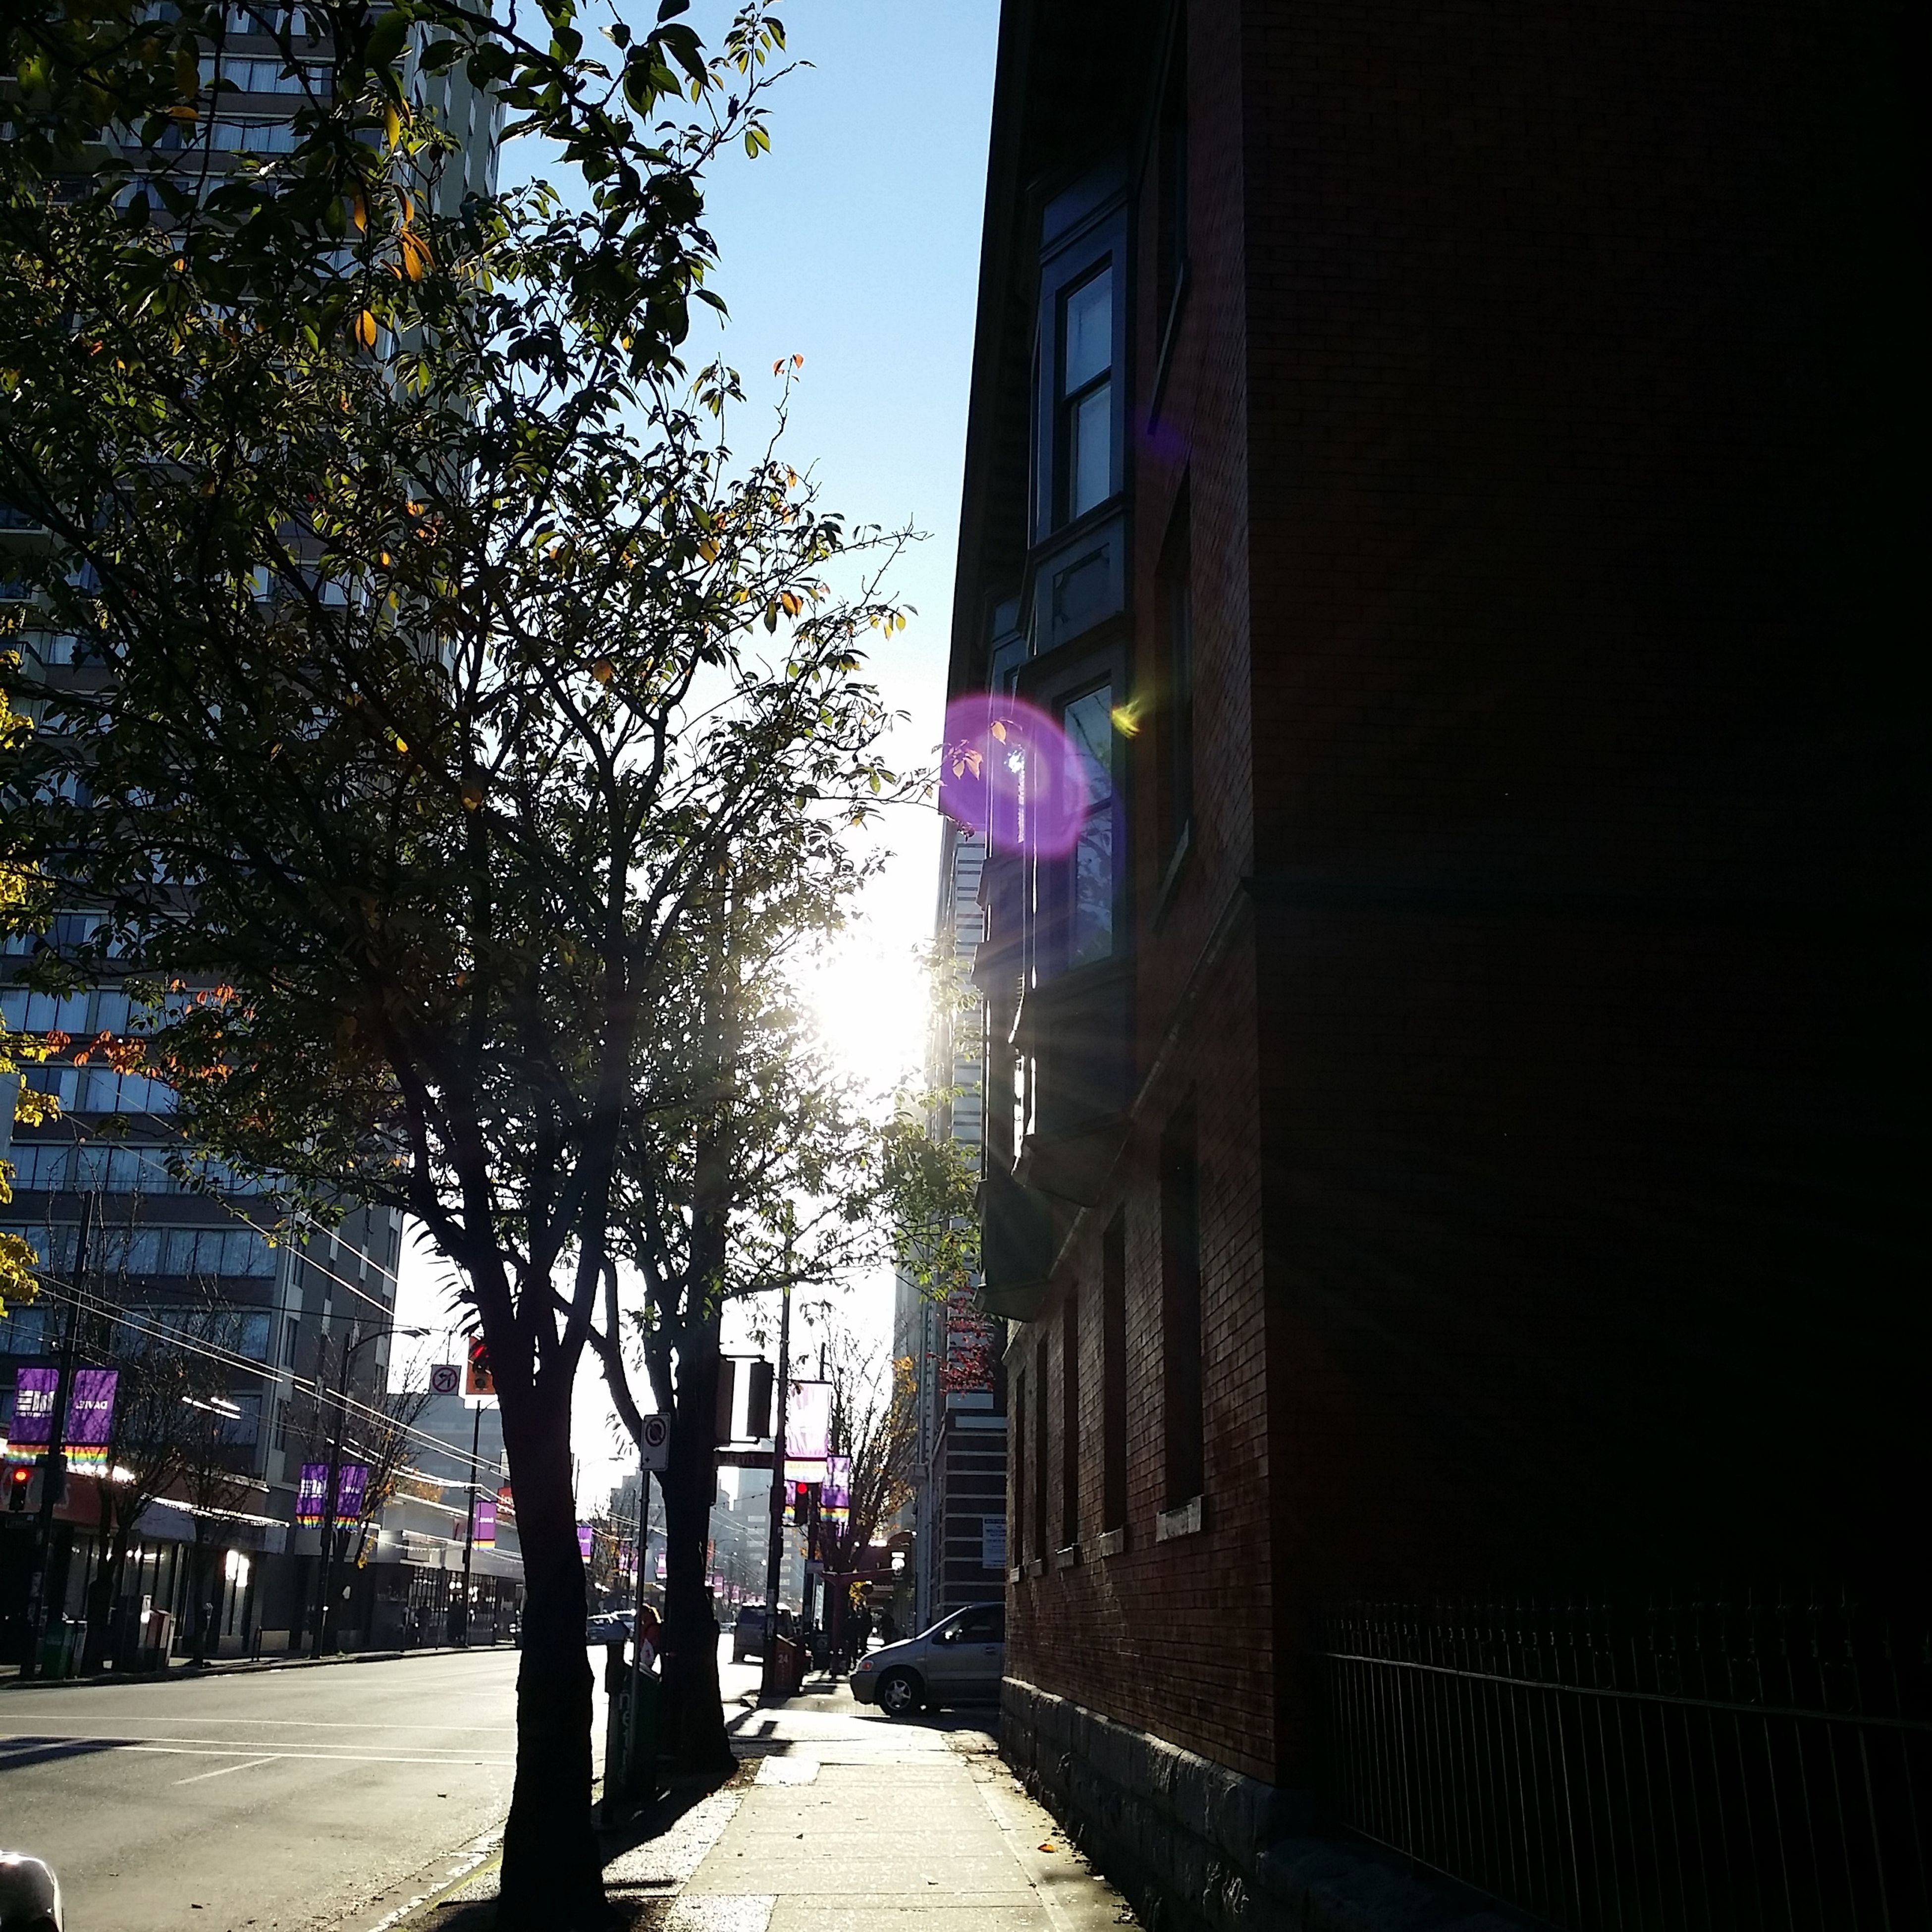 building exterior, architecture, built structure, the way forward, street, city, transportation, road, diminishing perspective, building, tree, street light, city street, car, city life, residential building, sunlight, vanishing point, incidental people, illuminated